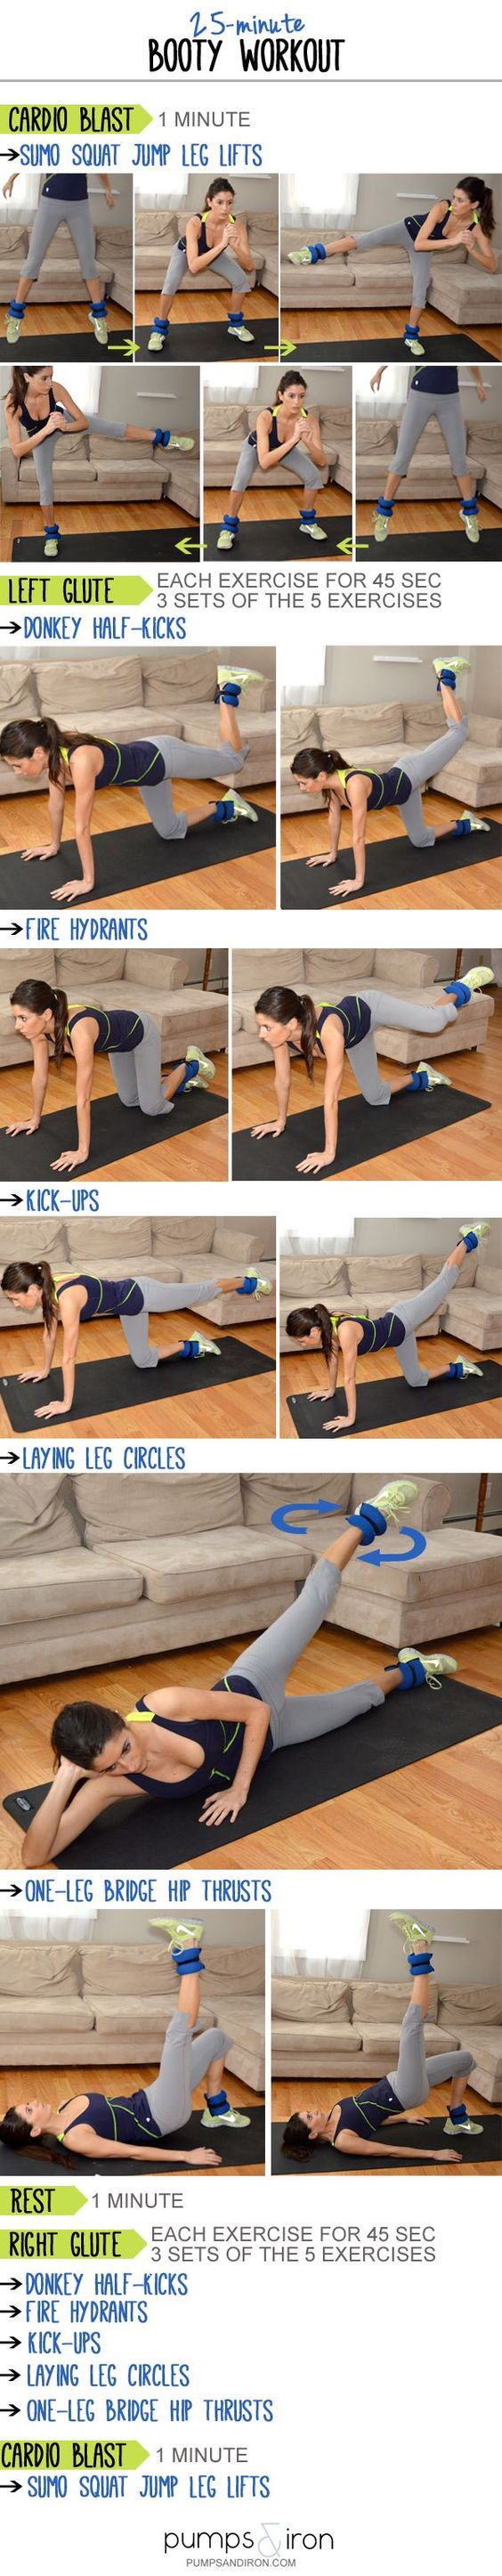 25 minute booty workout